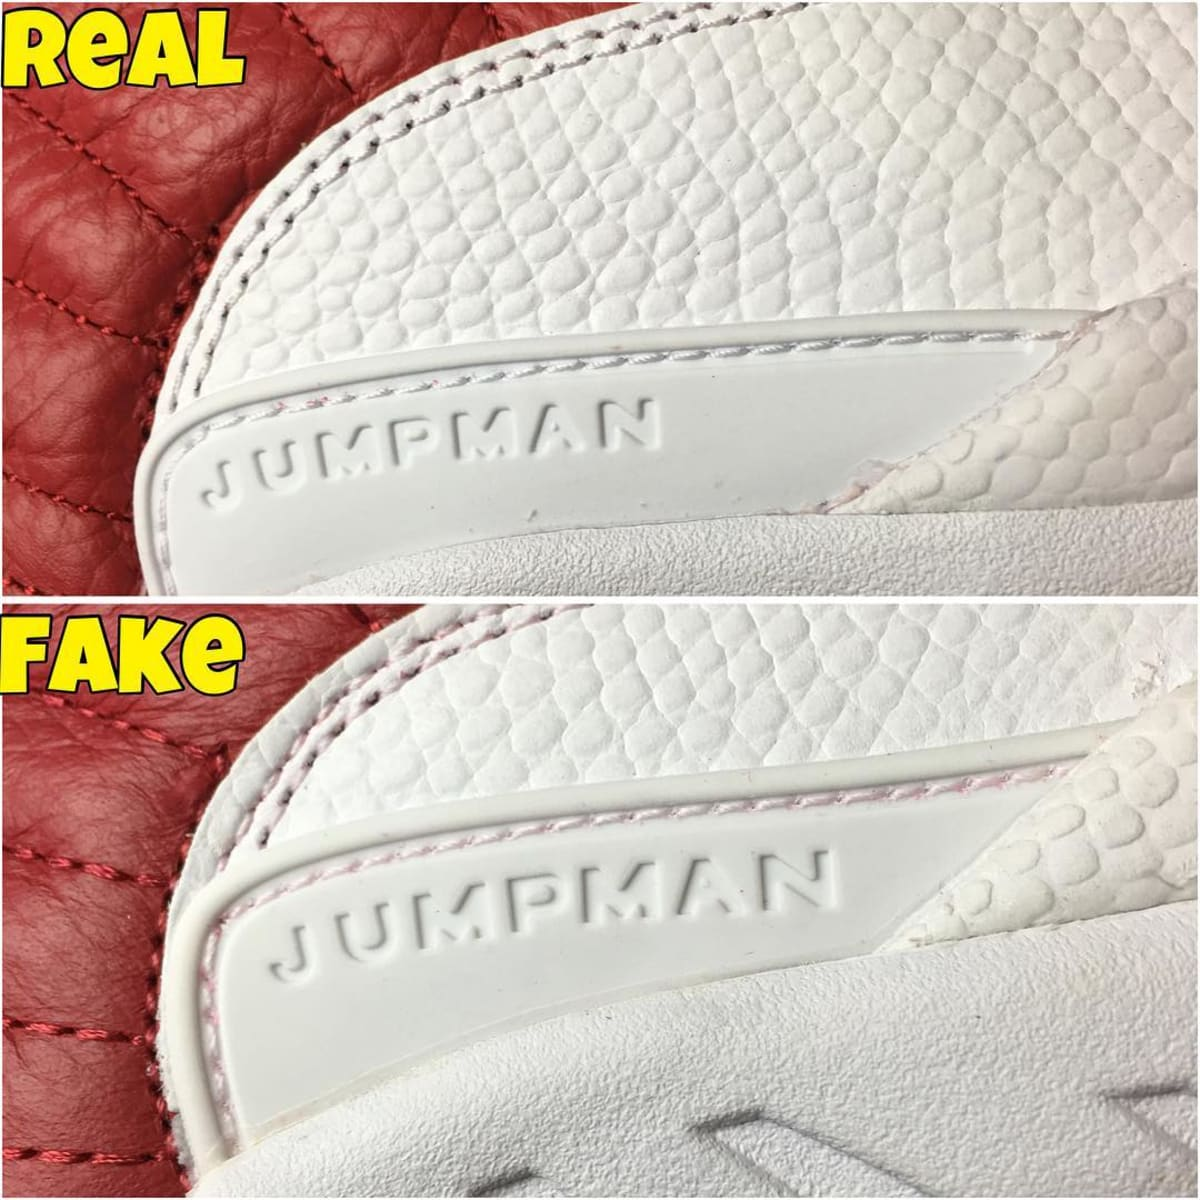 buy online 68551 7fcd7 Air Jordan XII 12 Gym Red Alternate Real Fake Legit Check - Air Jordan XII  12 Gym Red Real Fake Legit Check   Sole Collector